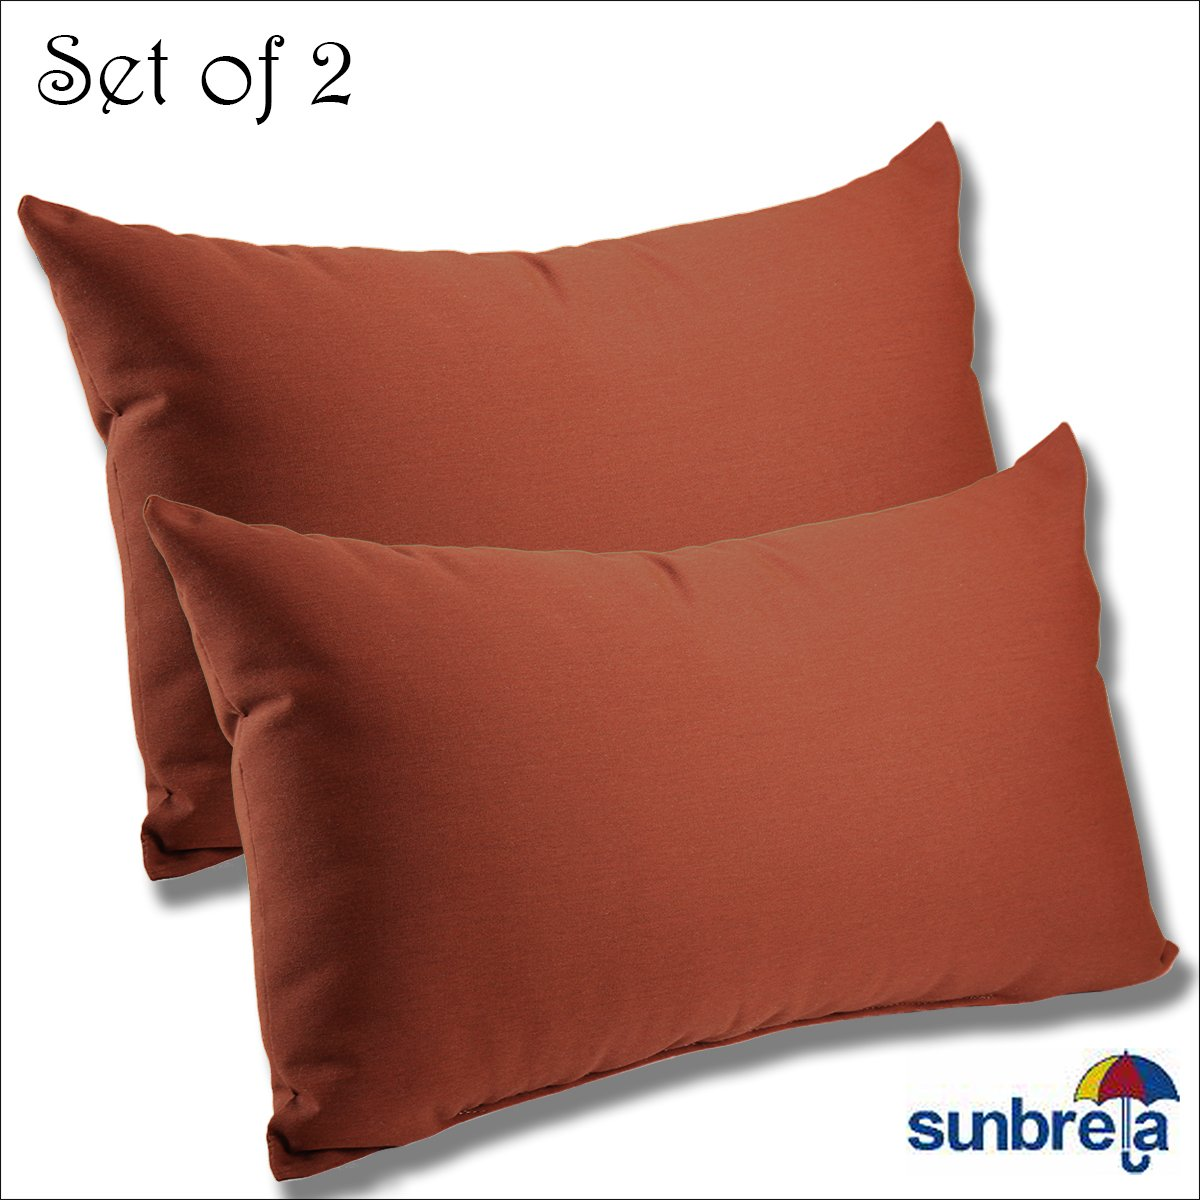 Comfort Classics Inc. Set of 2-22x12x4 Sunbrella Indoor Outdoor Fabrics Lumbar Pillows in Henna